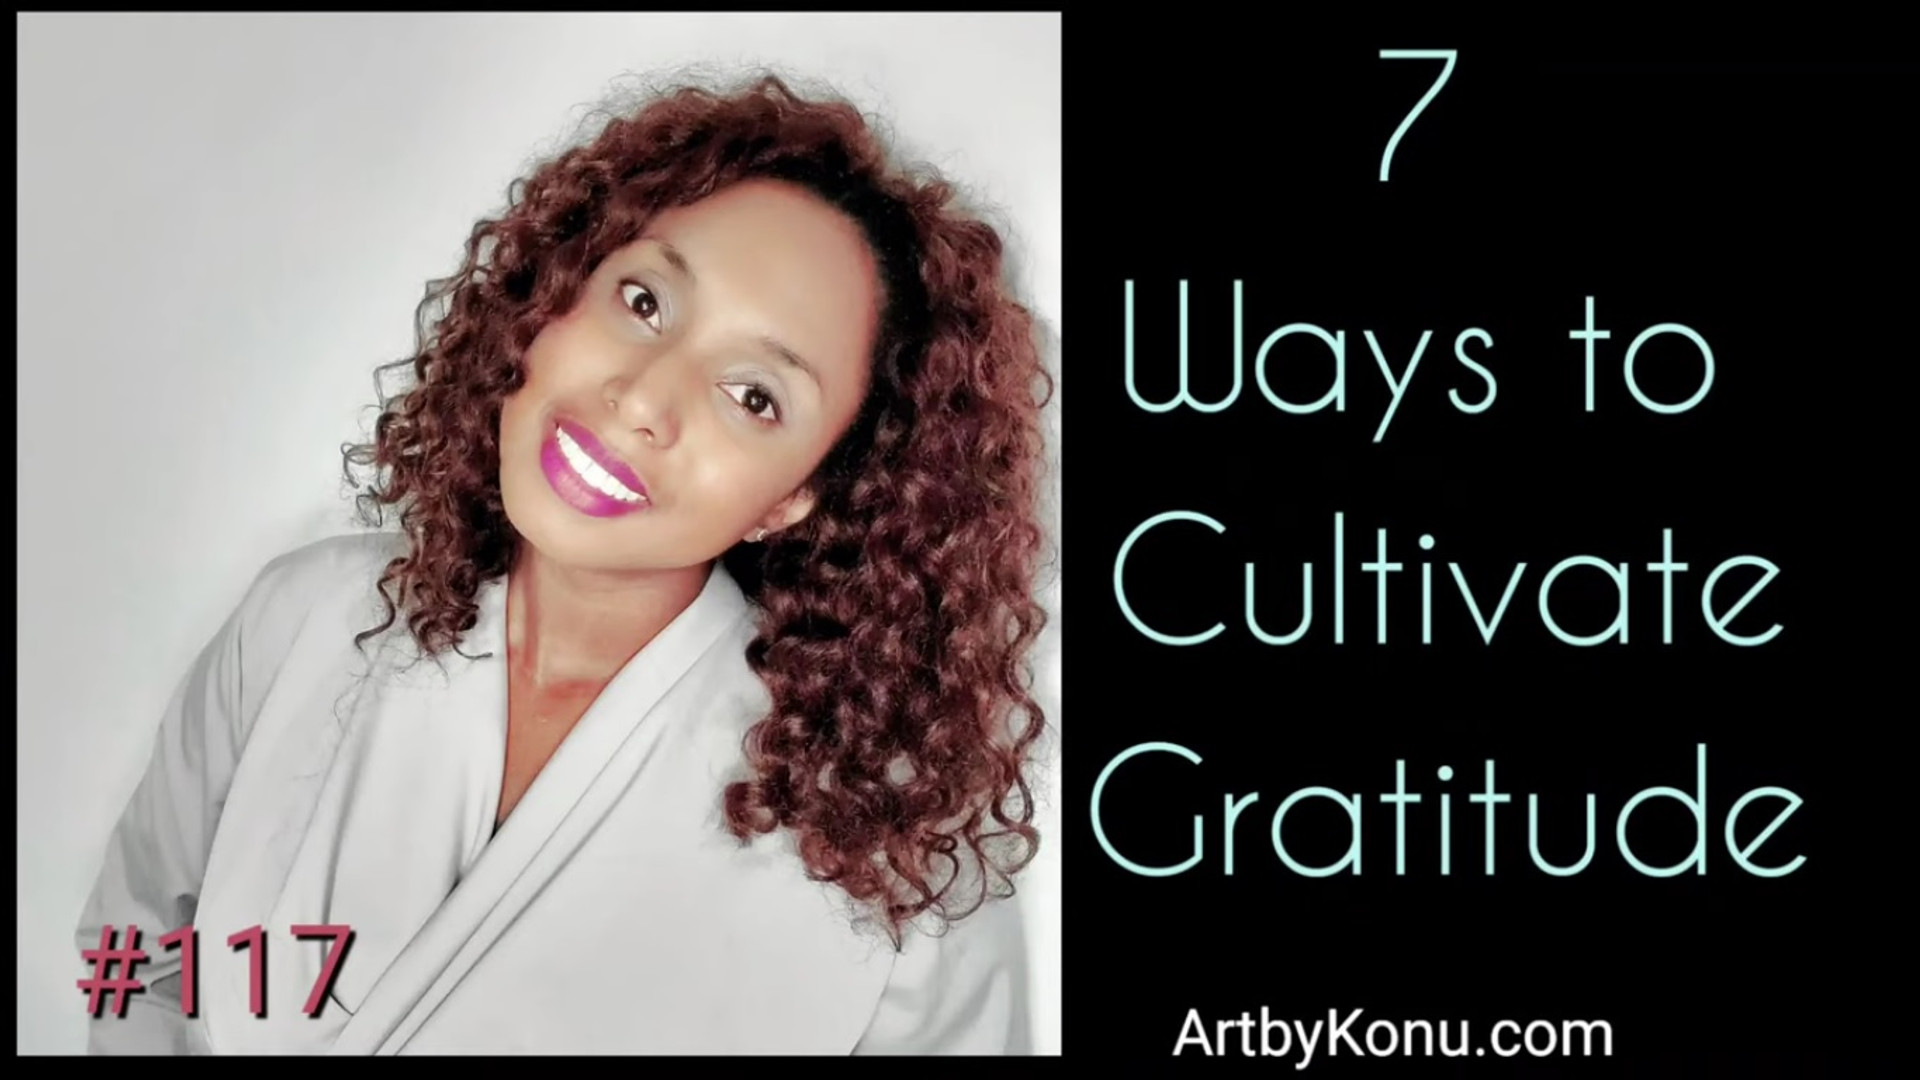 7 Ways to Cultivate Gratitude in Your Daily Life